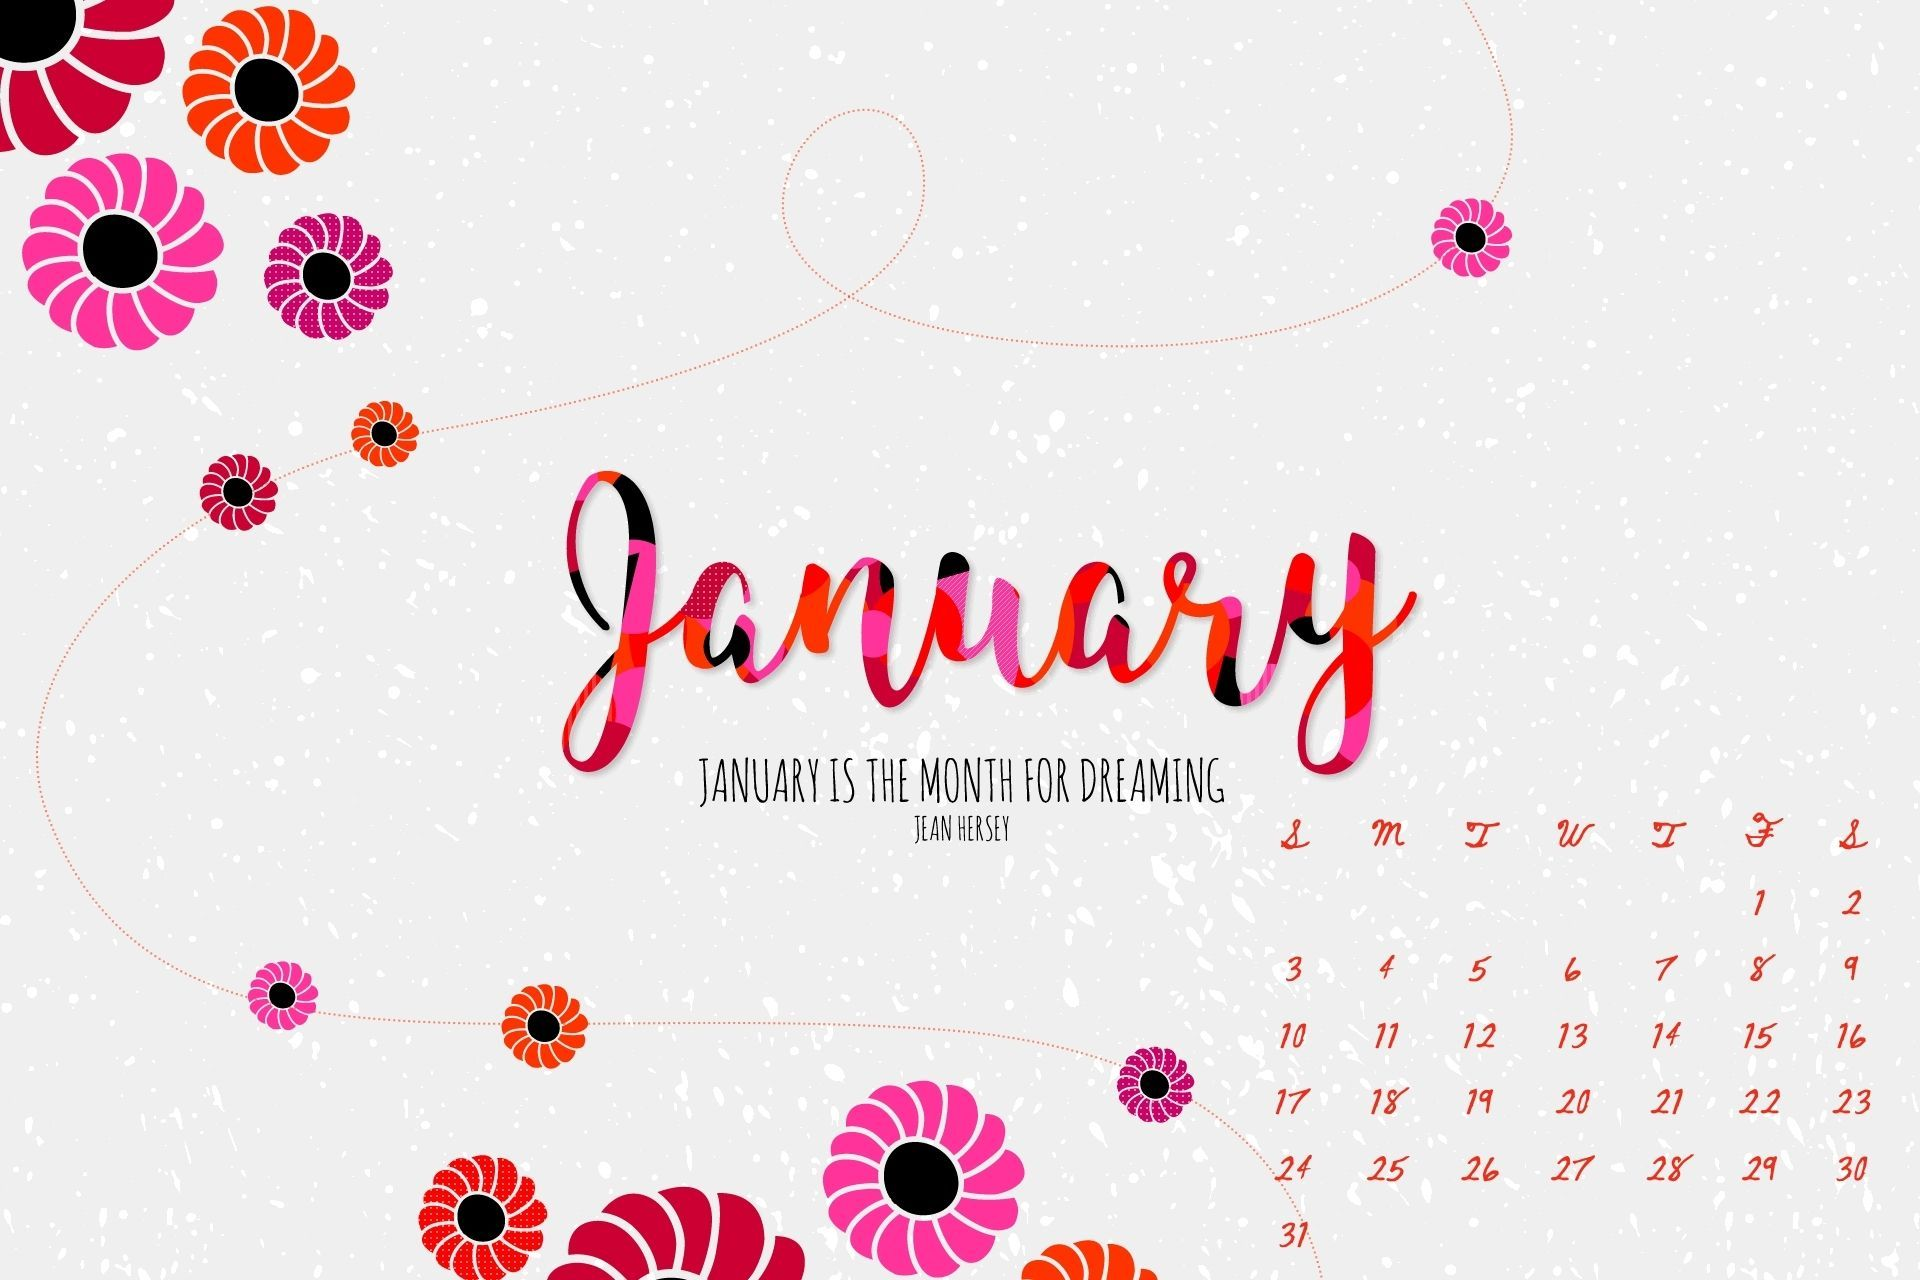 January 2021 Calendar Floral Wallpaper Download in high definition 1920x1280